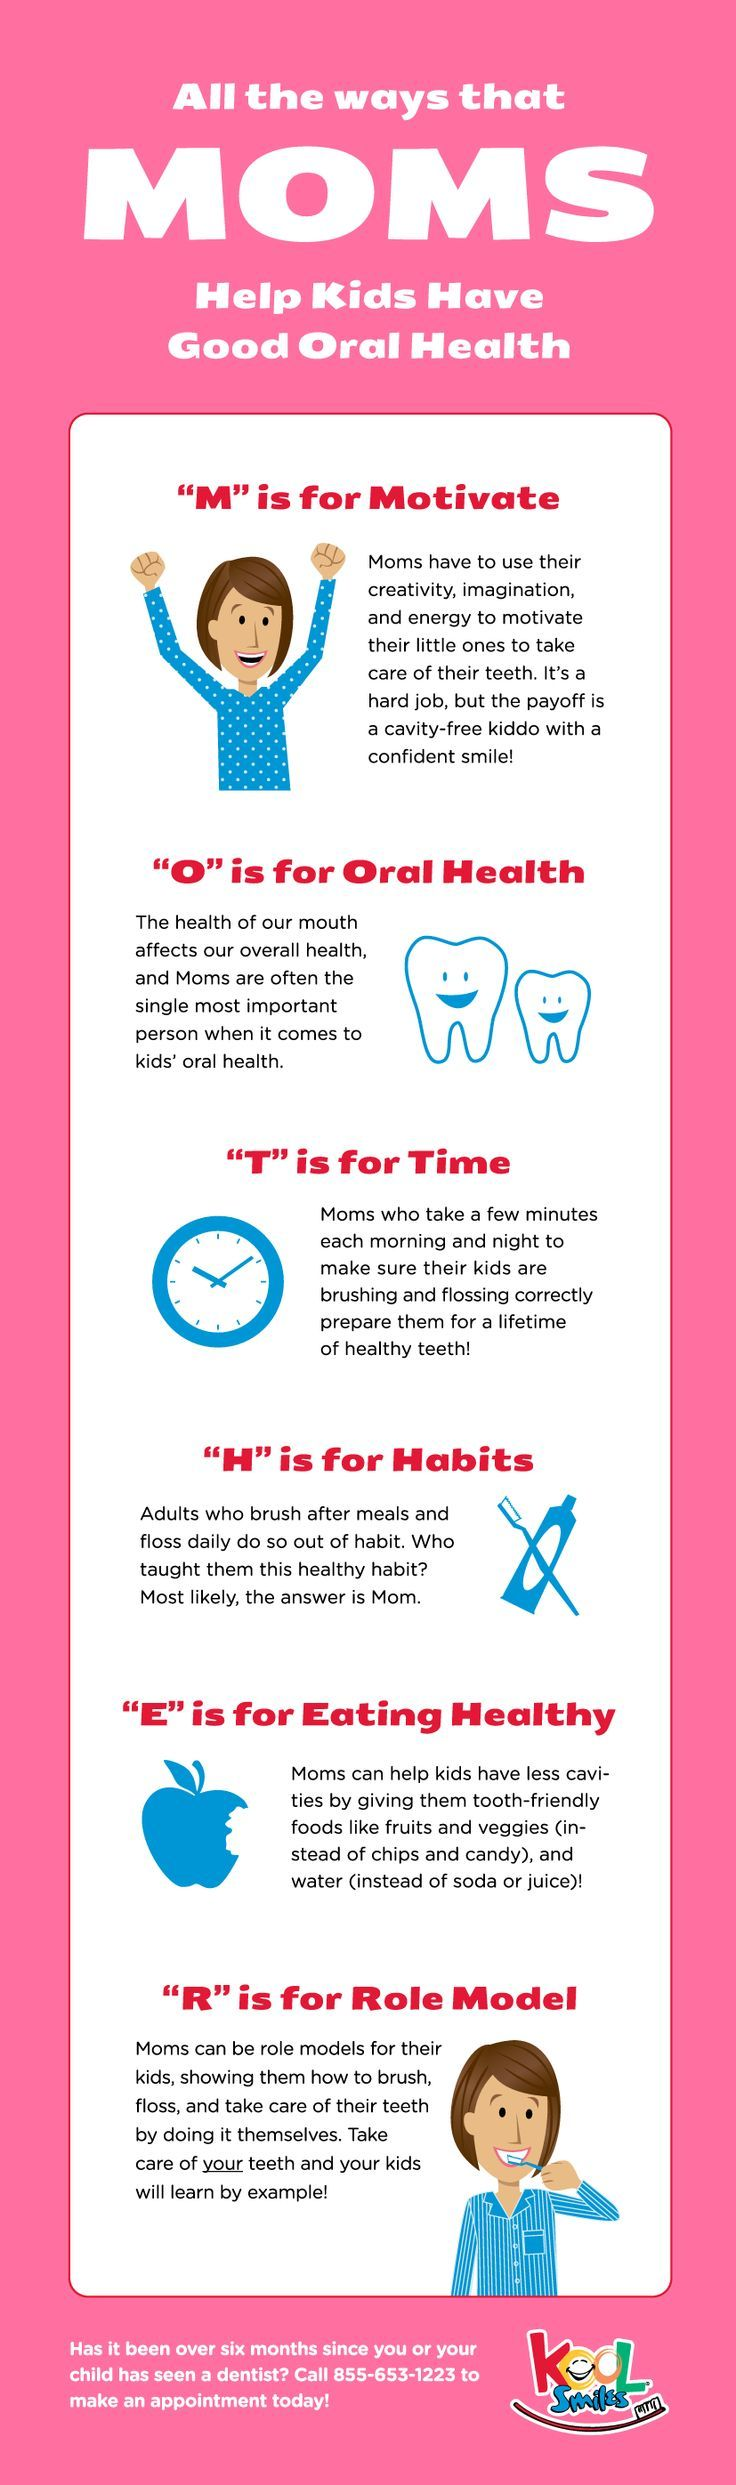 oral hygiene speech Isu dental hygiene, pocatello 999 martin luther king jr way pocatello, id  83209 isu dental hygiene, idaho falls 1600 s 25th ave idaho falls, id 83404 .